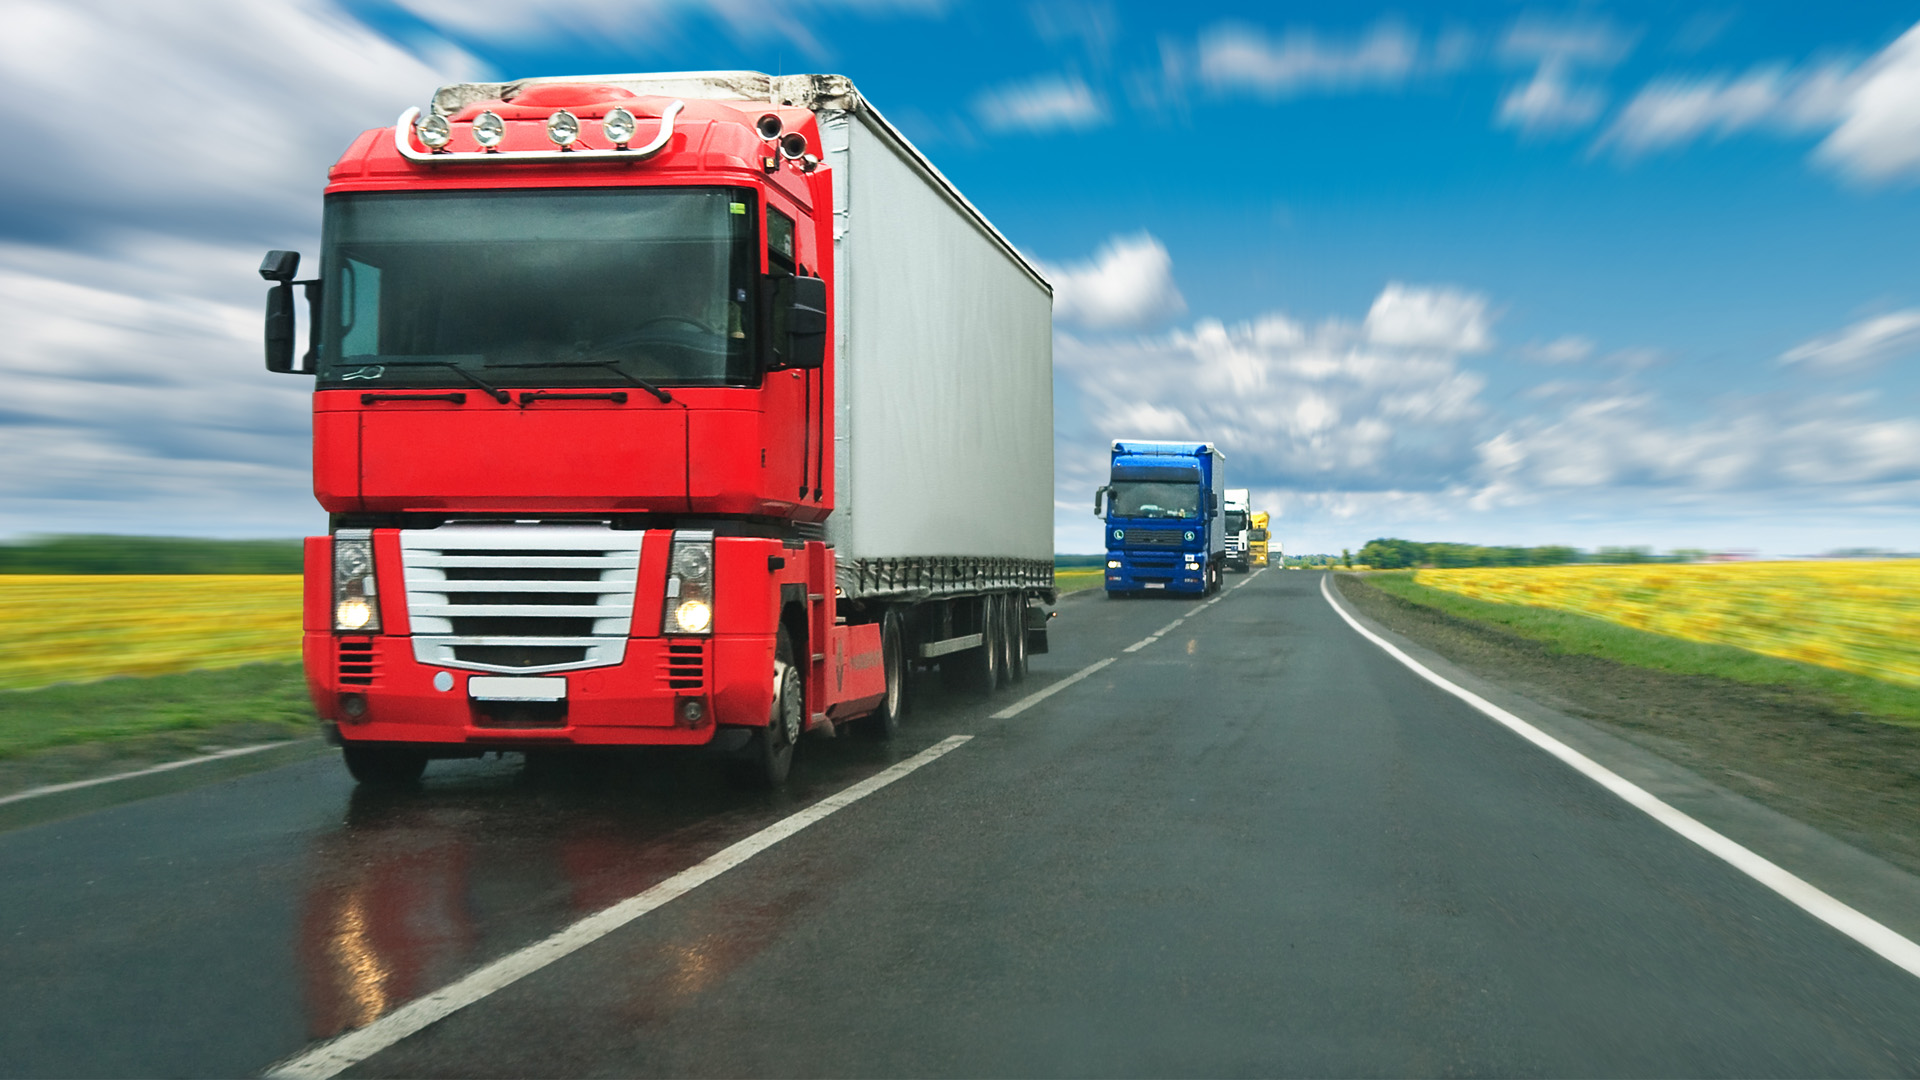 Draft Law Restricting Certain Movement of Freight Transport Was Withdrawn from Parliament's Consideration